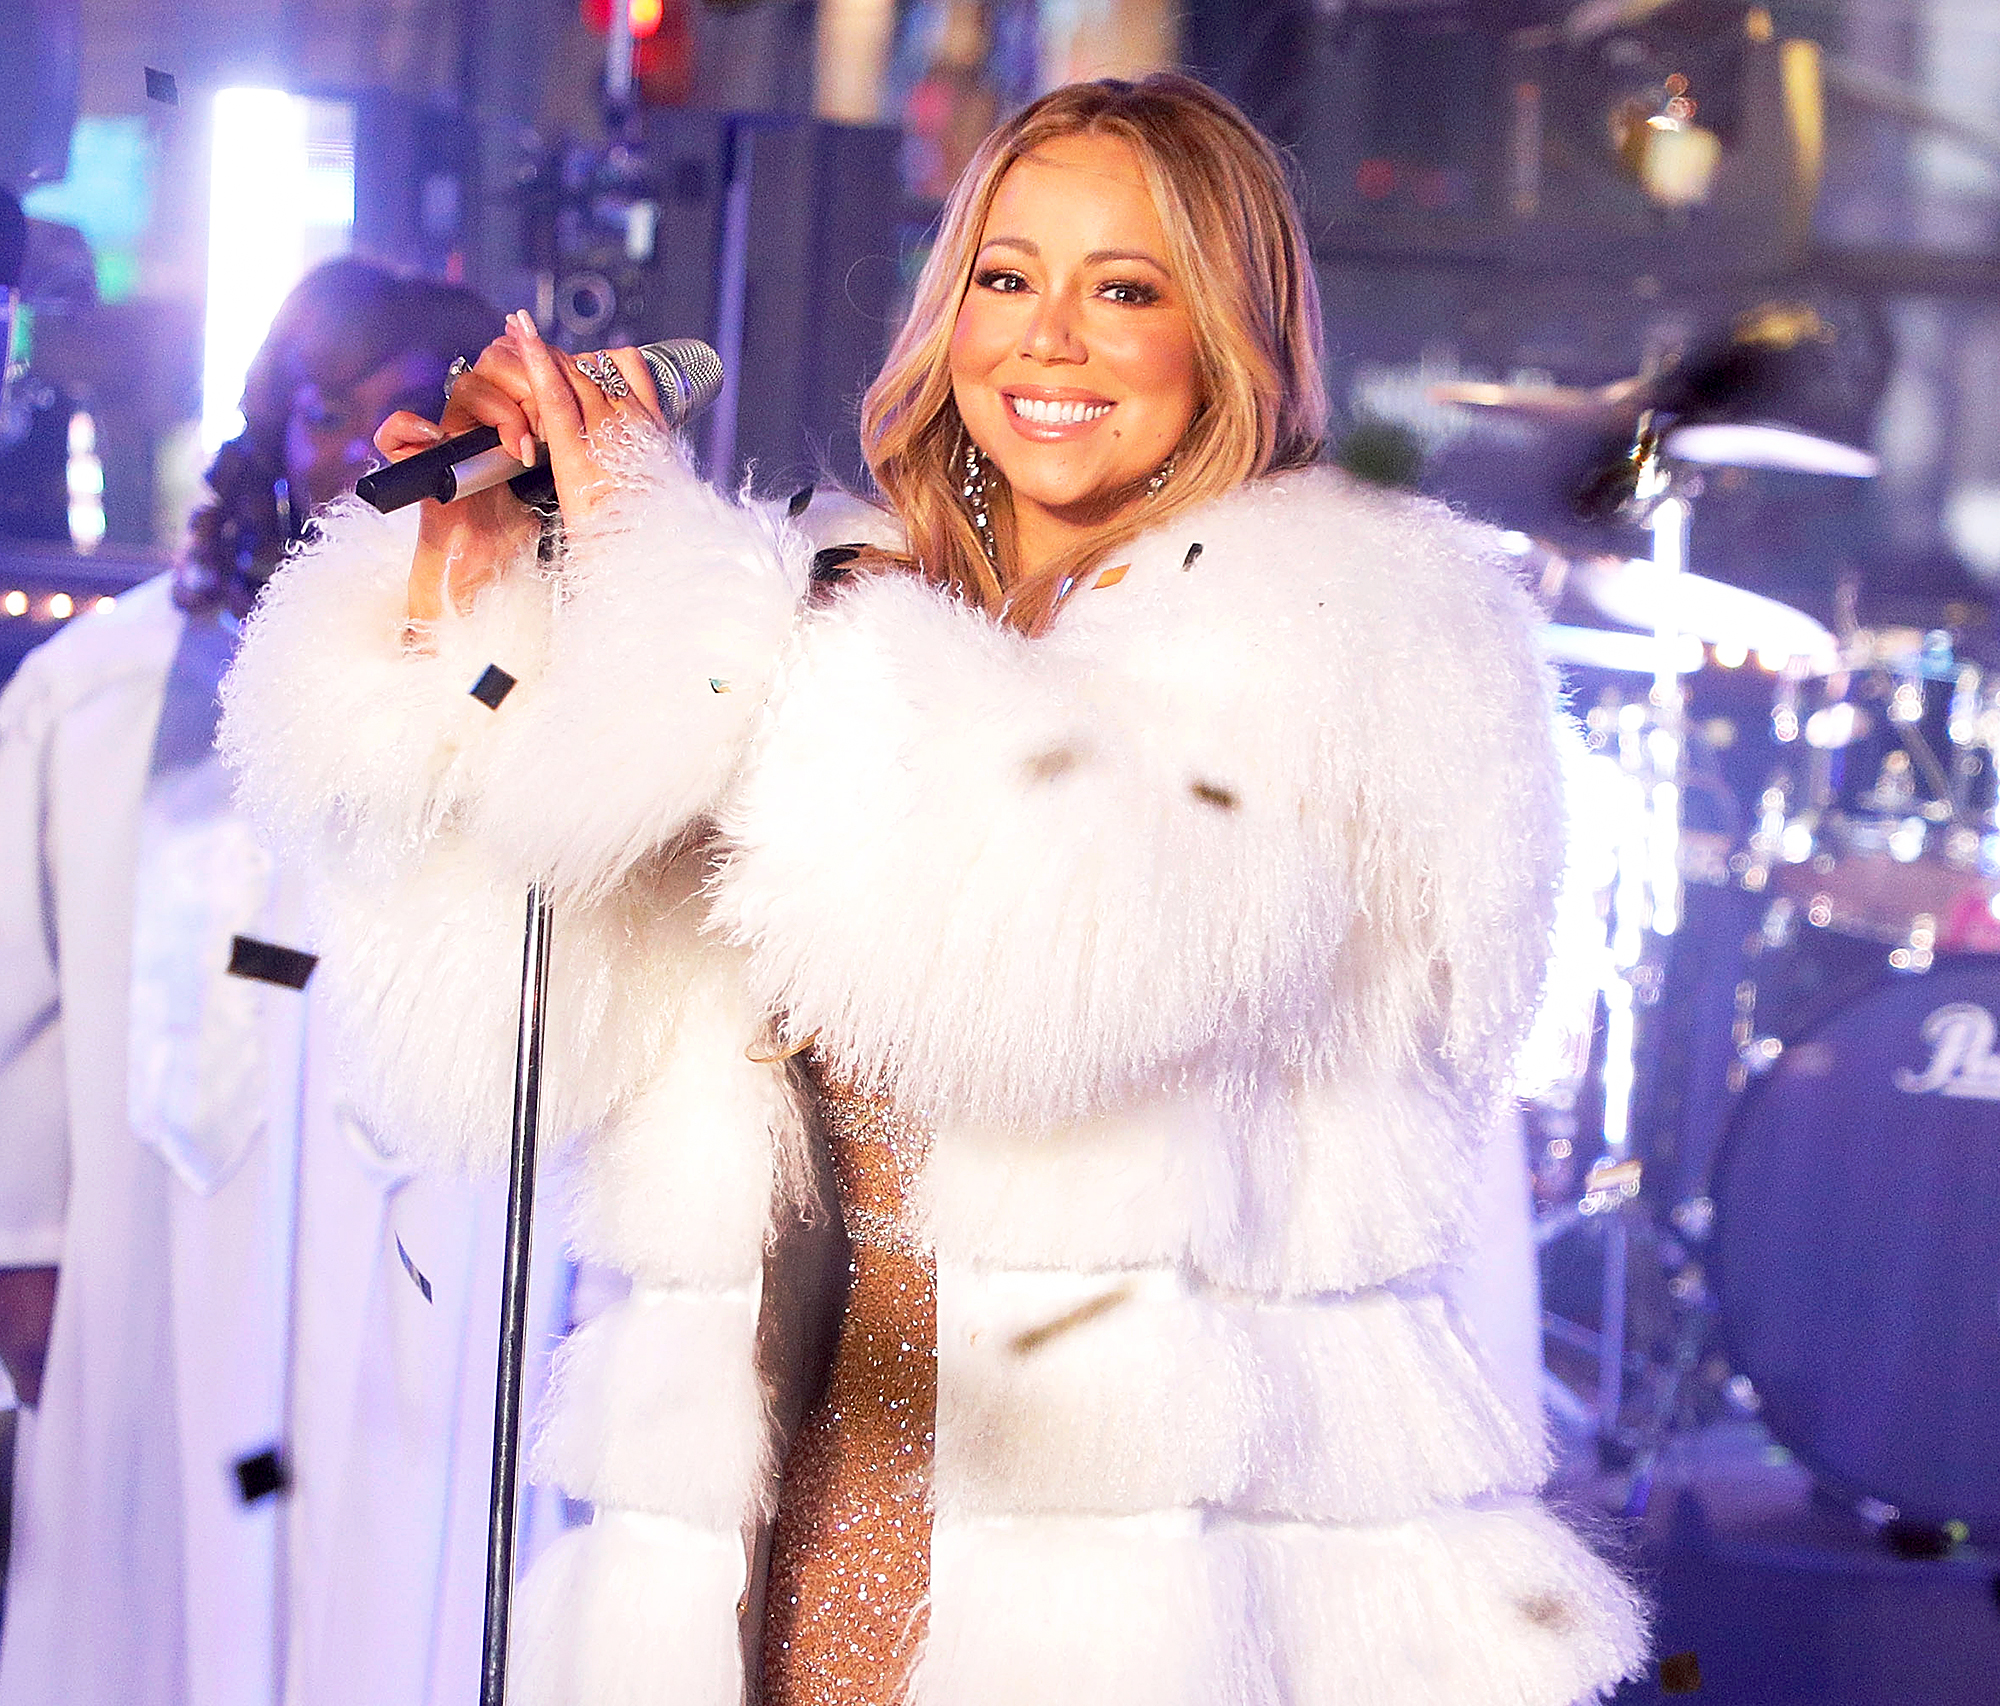 Mariah Carey performs during Dick Clark's New Year's Rockin Eve at Times Square